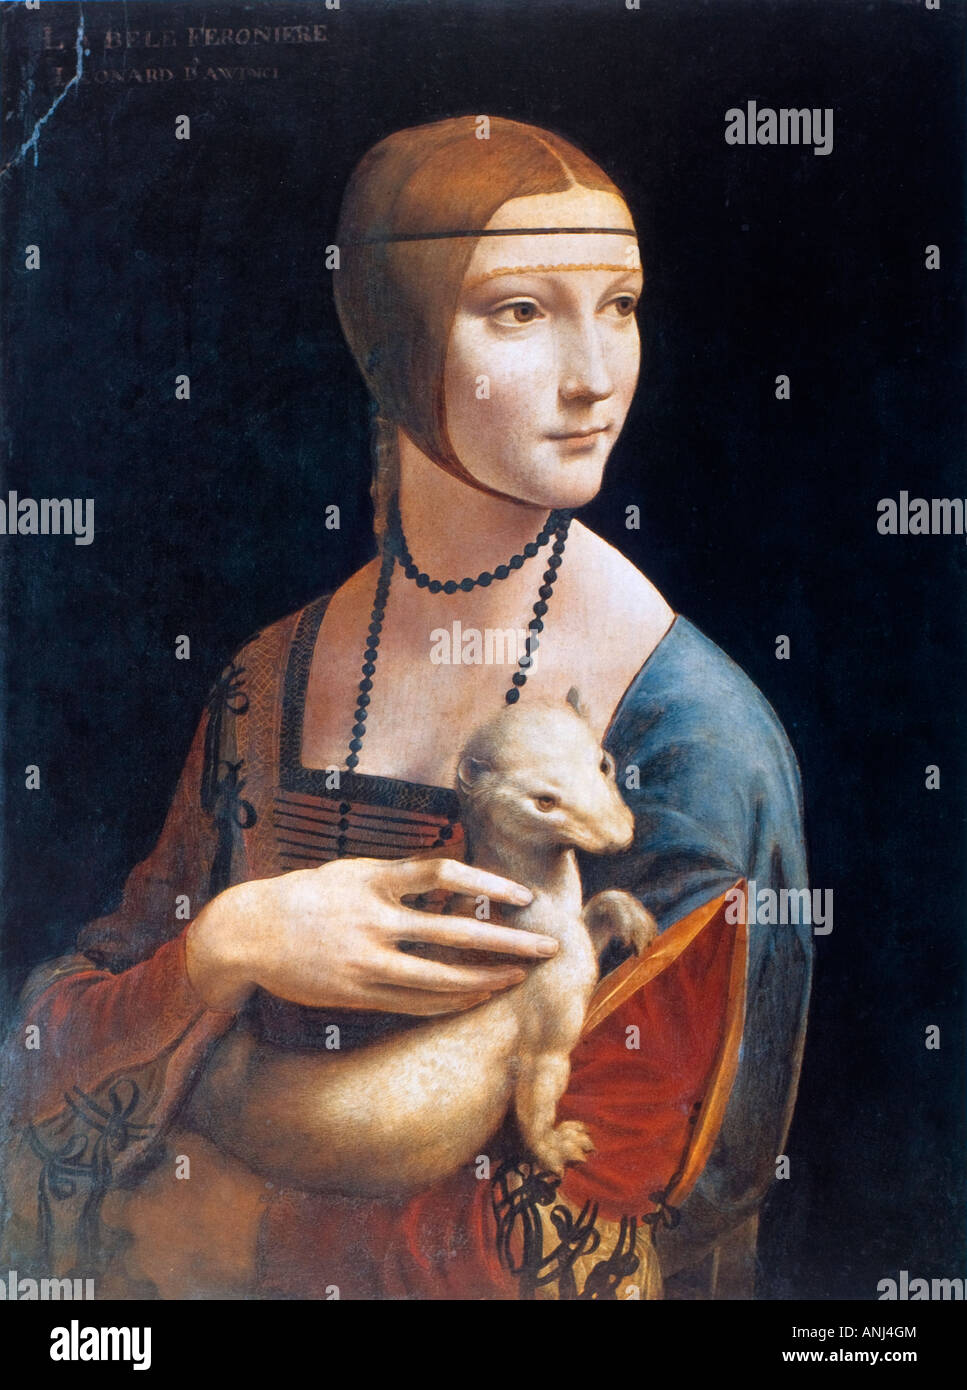 Portrait of Cecilia Gallerani (Lady with an Ermine) by Leonardo da Vinci Stock Photo